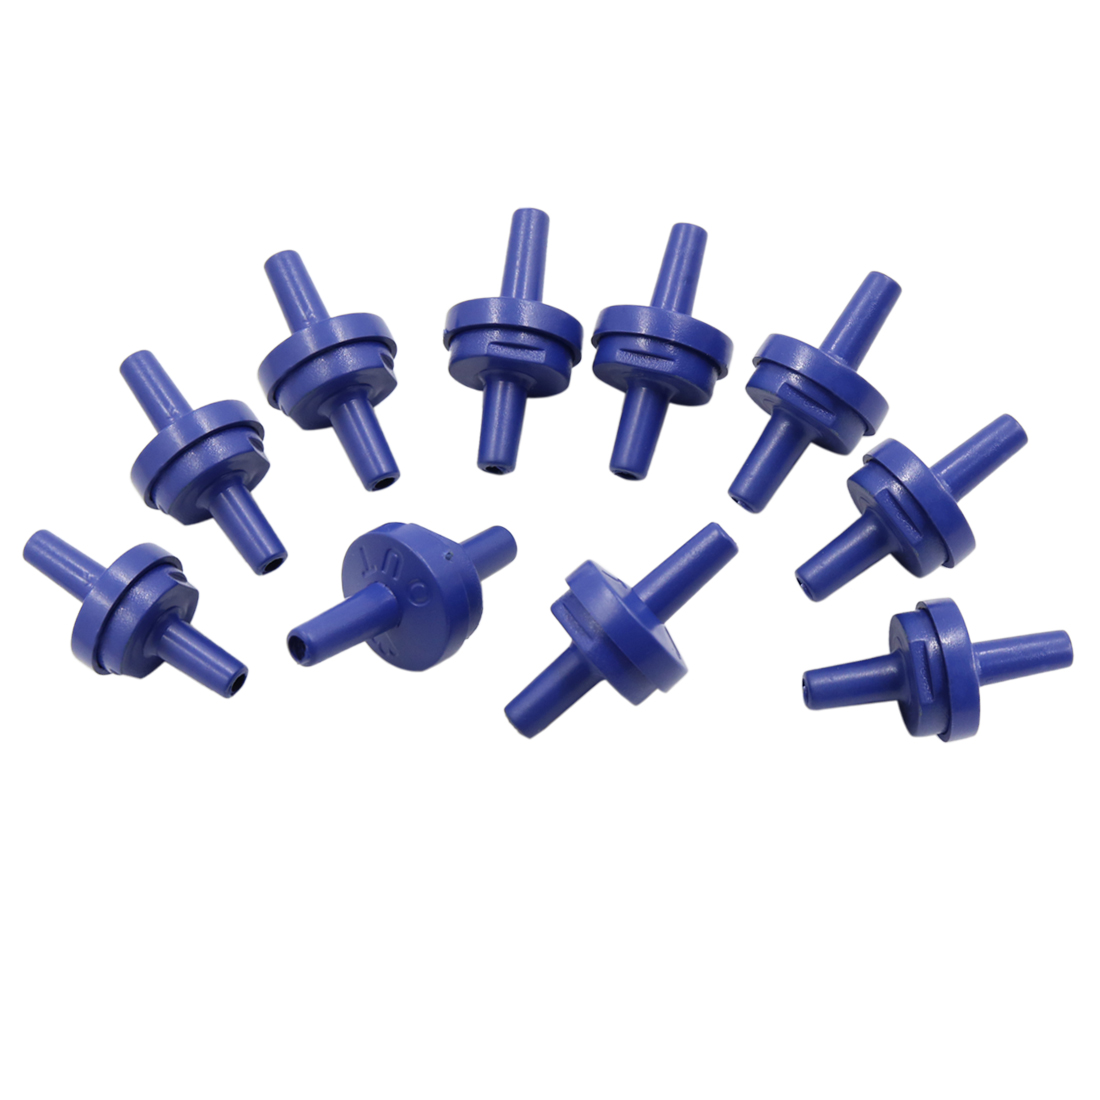 Sporting Plastic Check Valves for Fish Tank Aquarium Air Pump Purple 10 Pcs